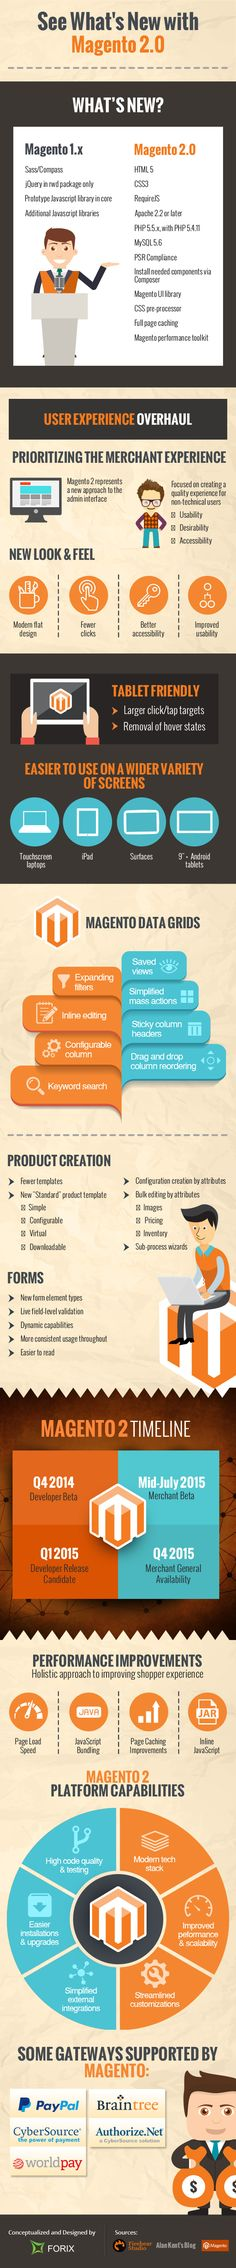 What's New with Magento 2.0 #infographic #eCommerce #Magento